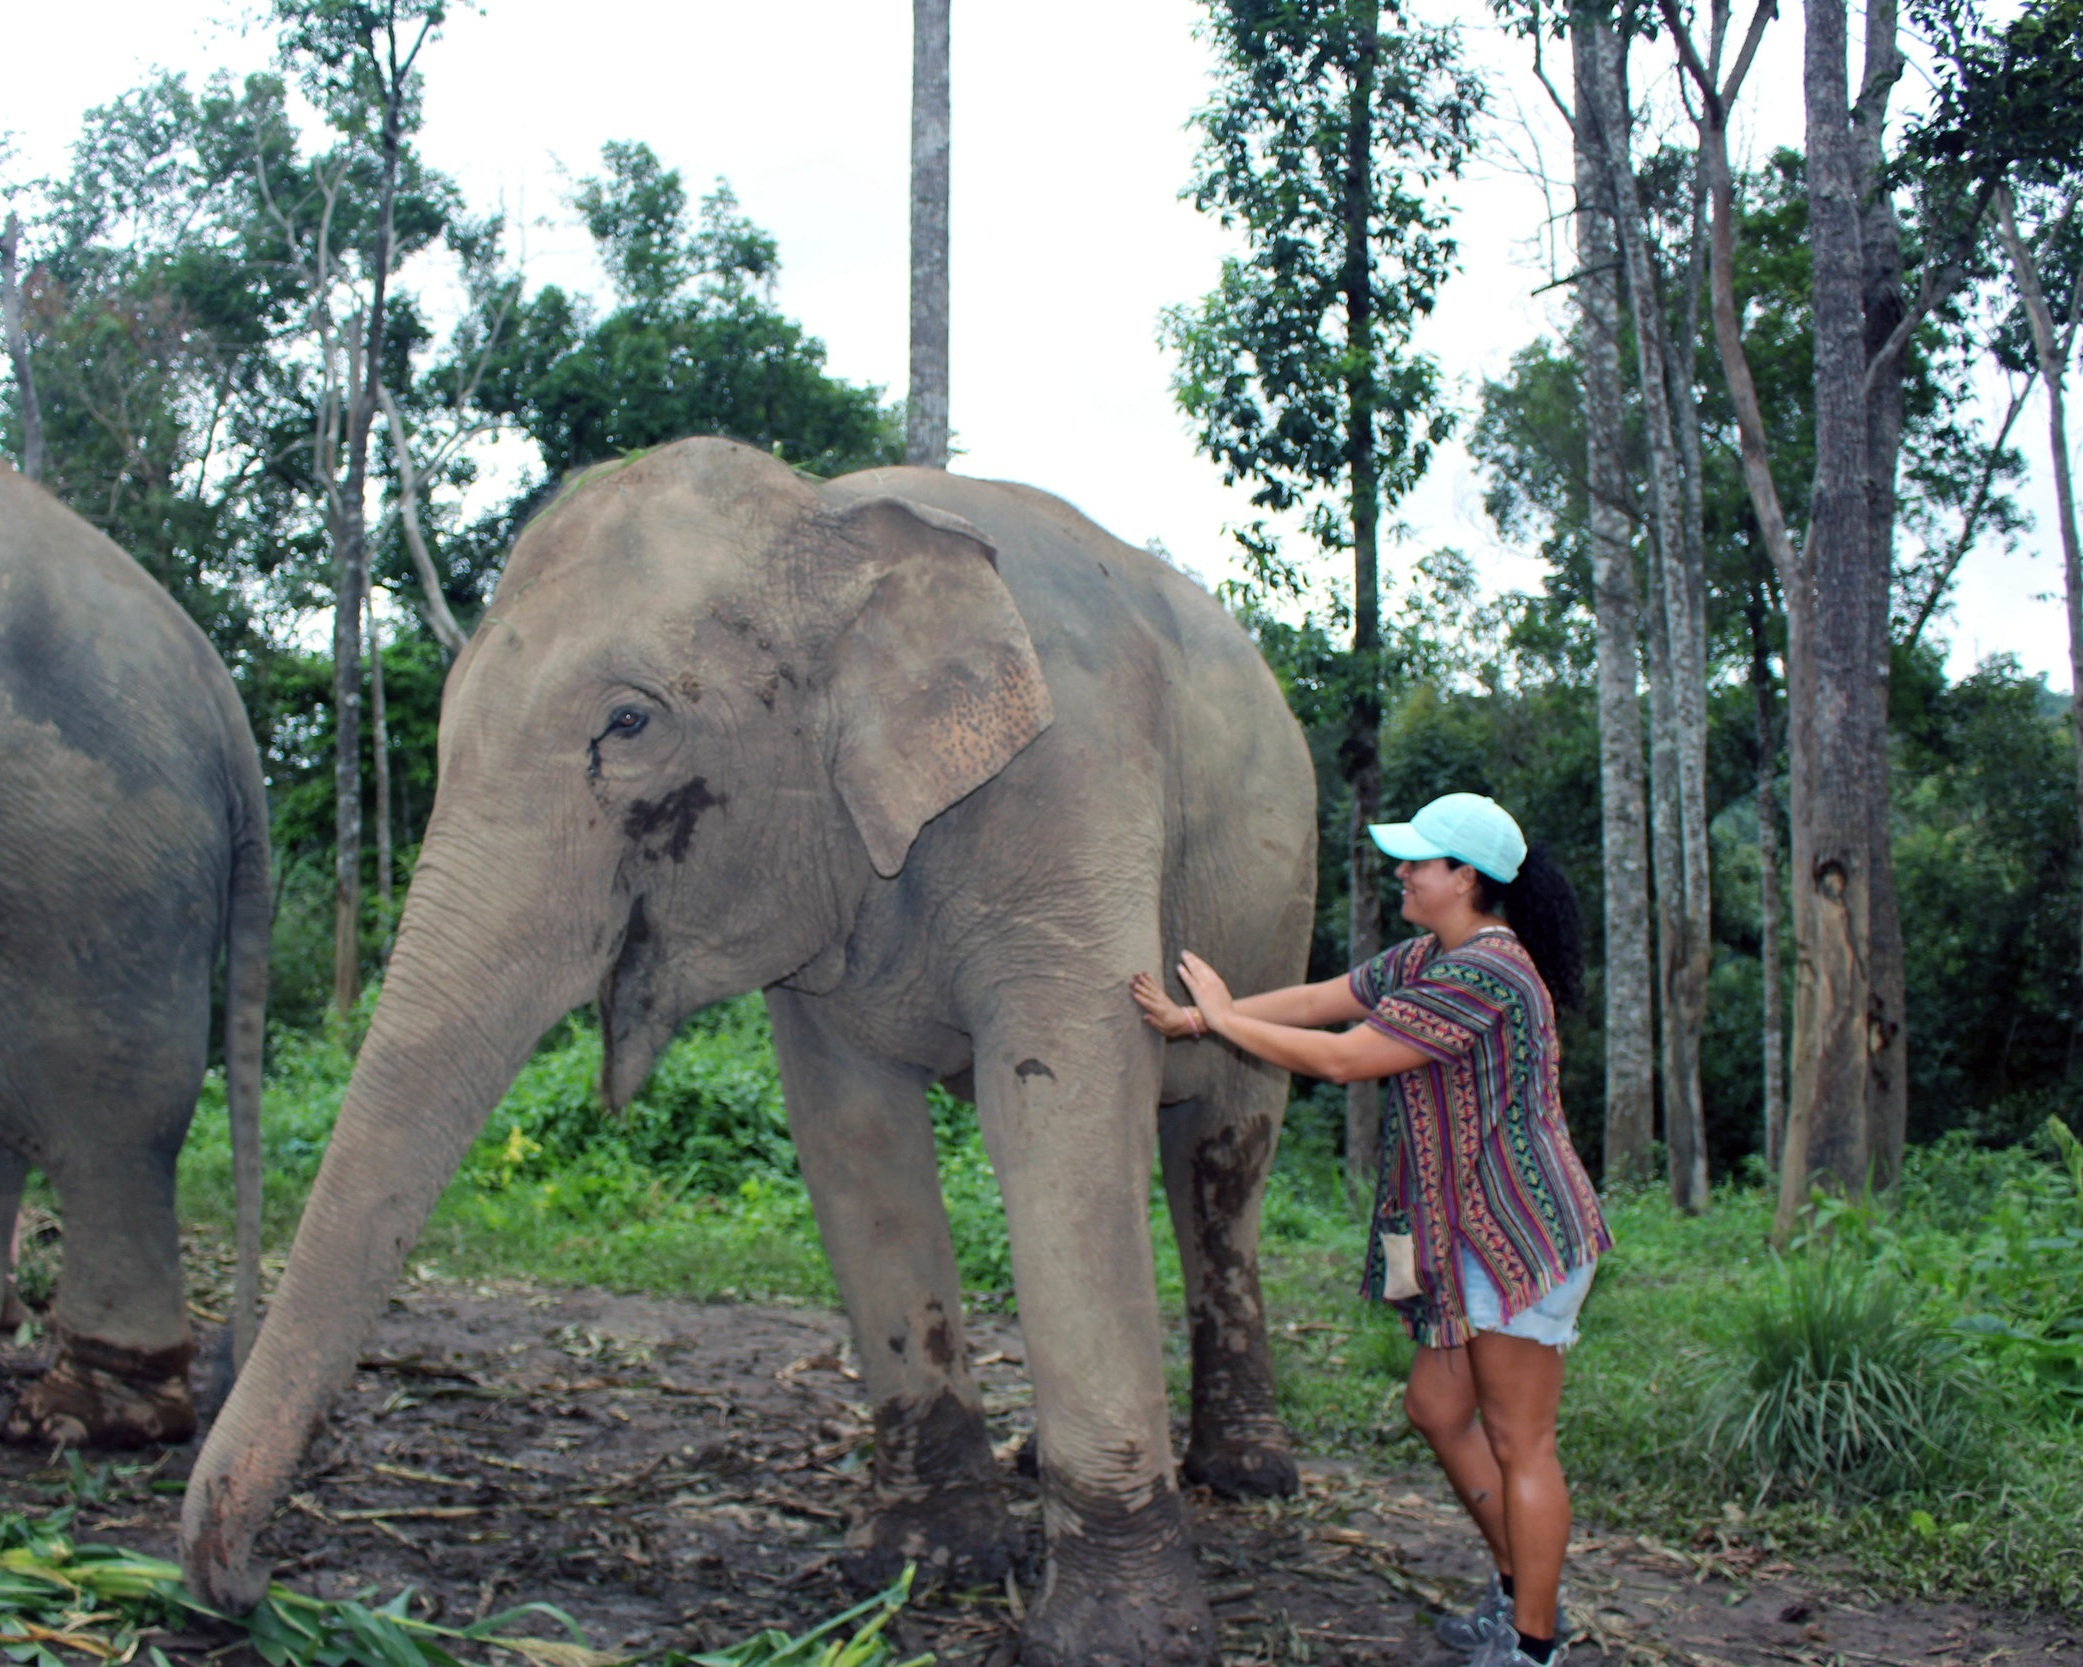 Making friends with the elephants at a Chiang Mai elephant rescue centre